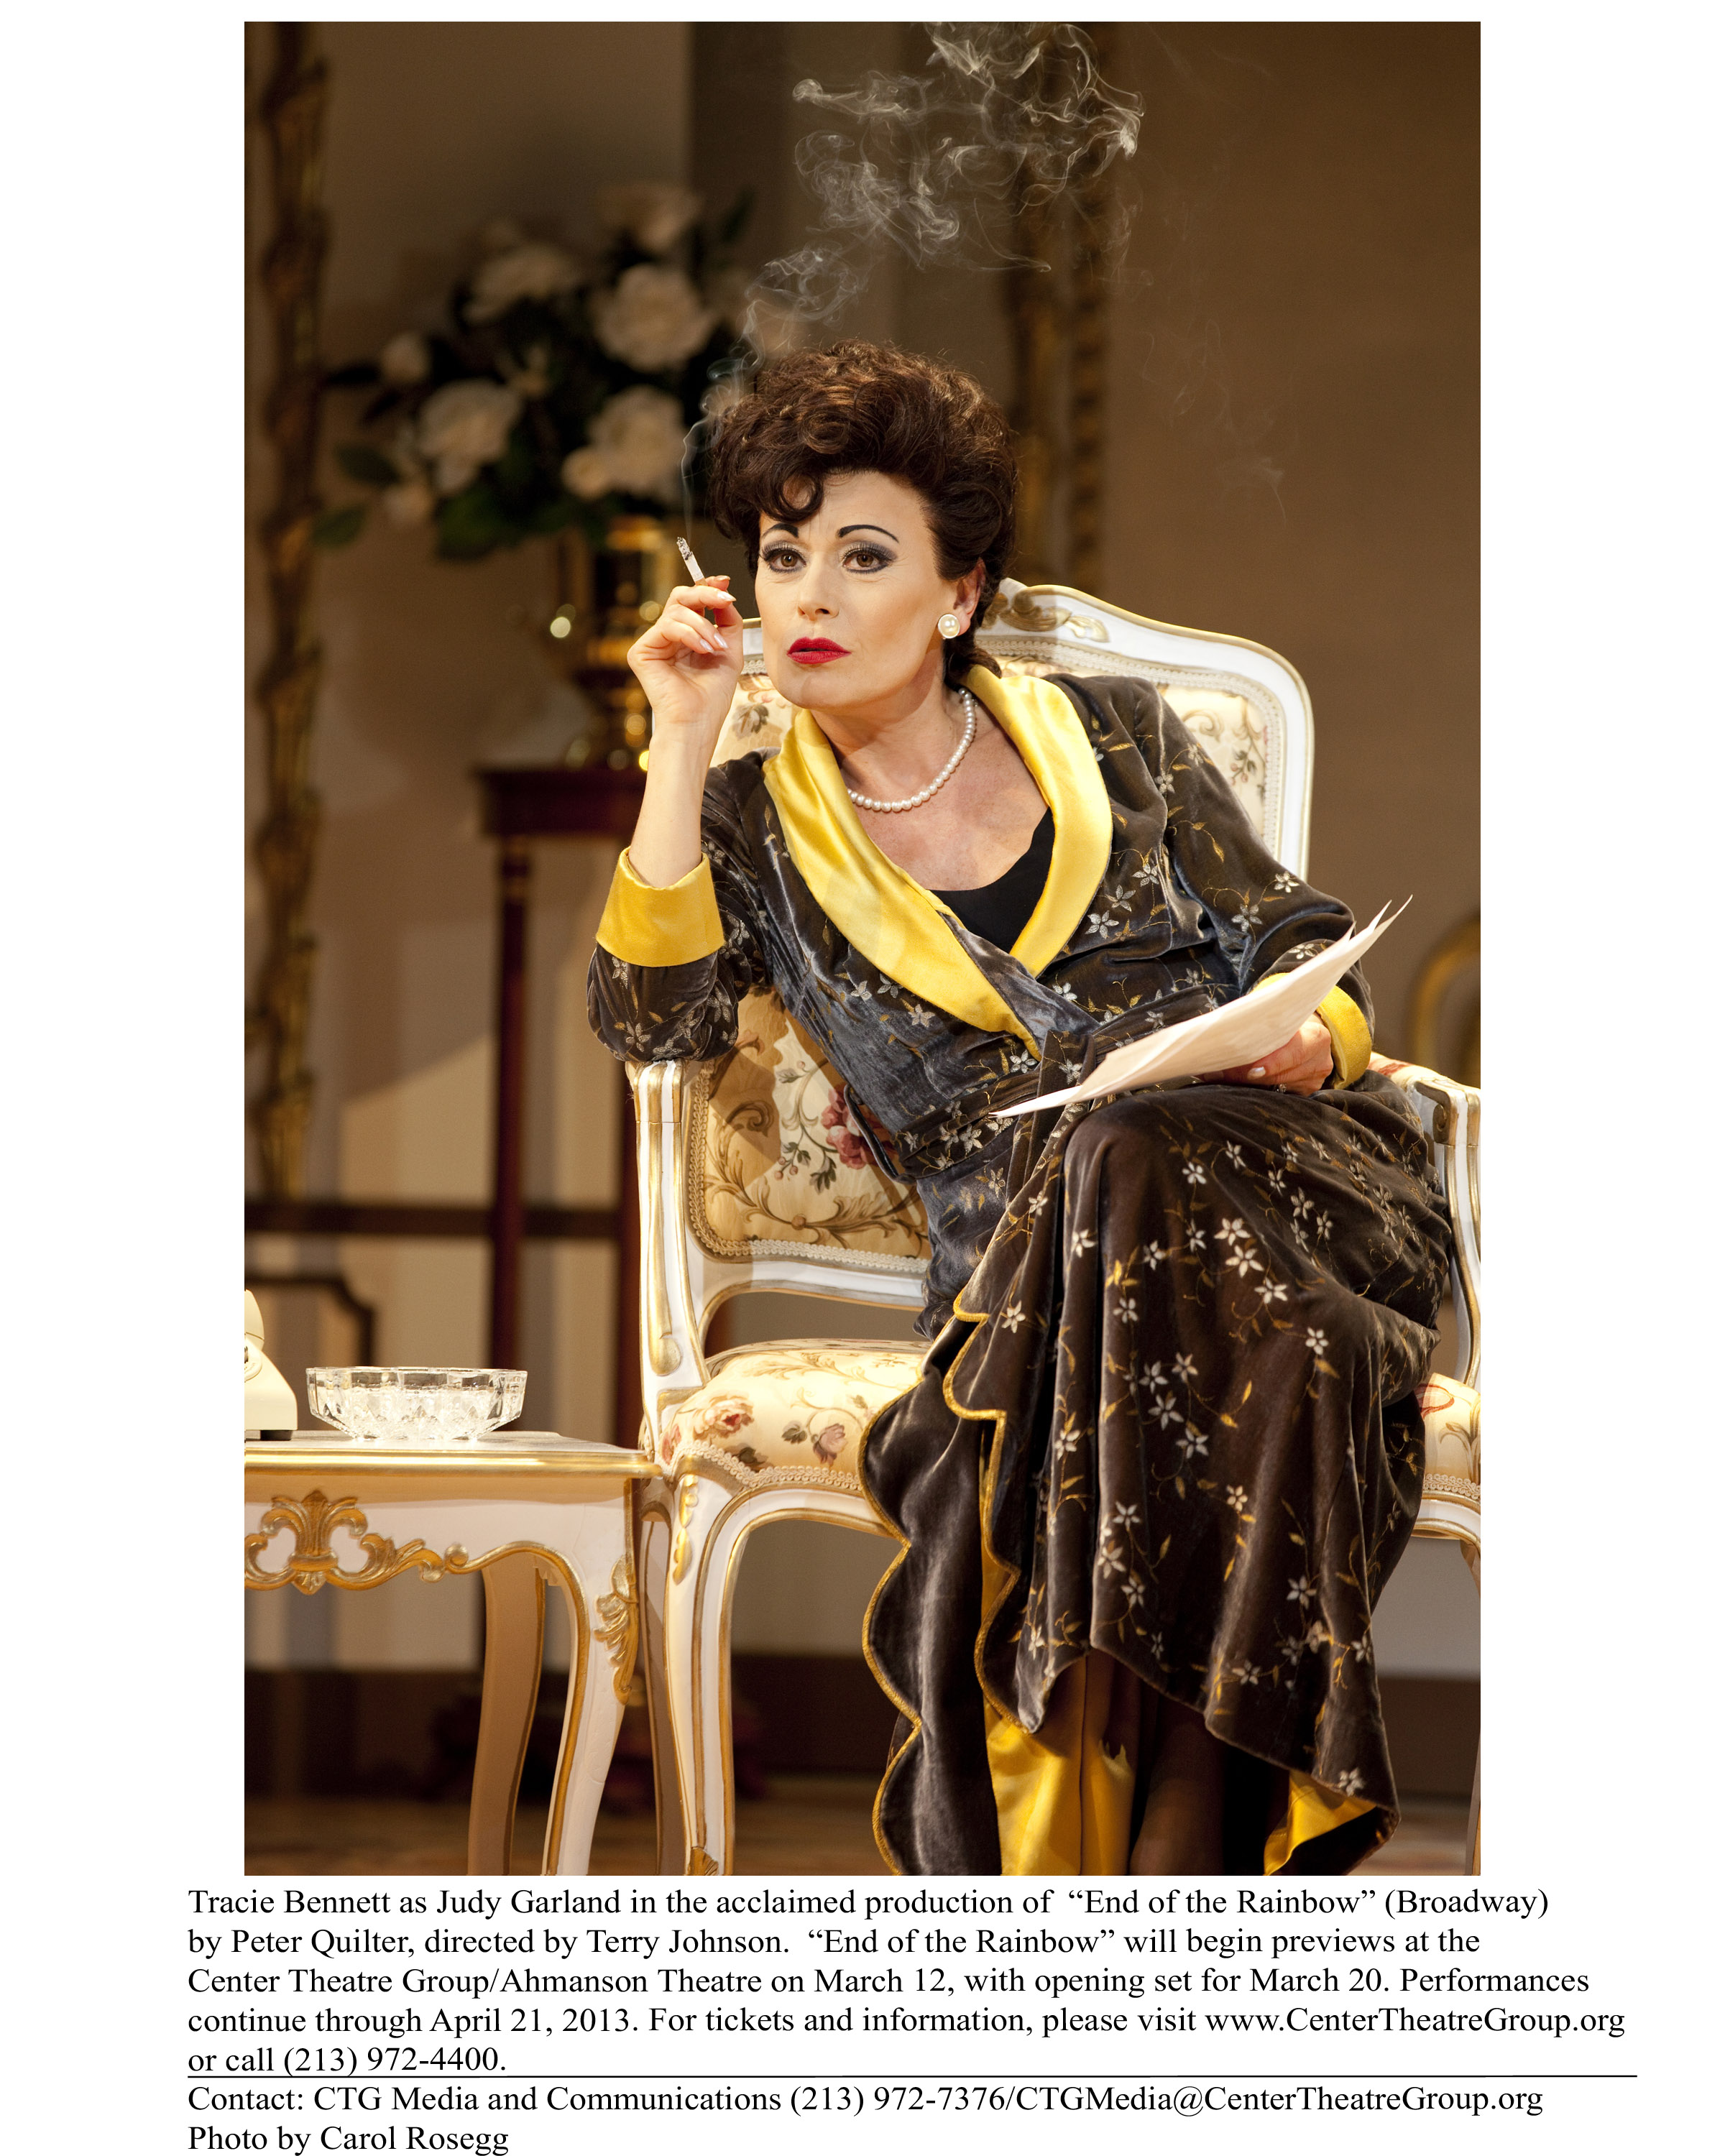 Tracie Bennett as Judy Garland in End of the Rainbow